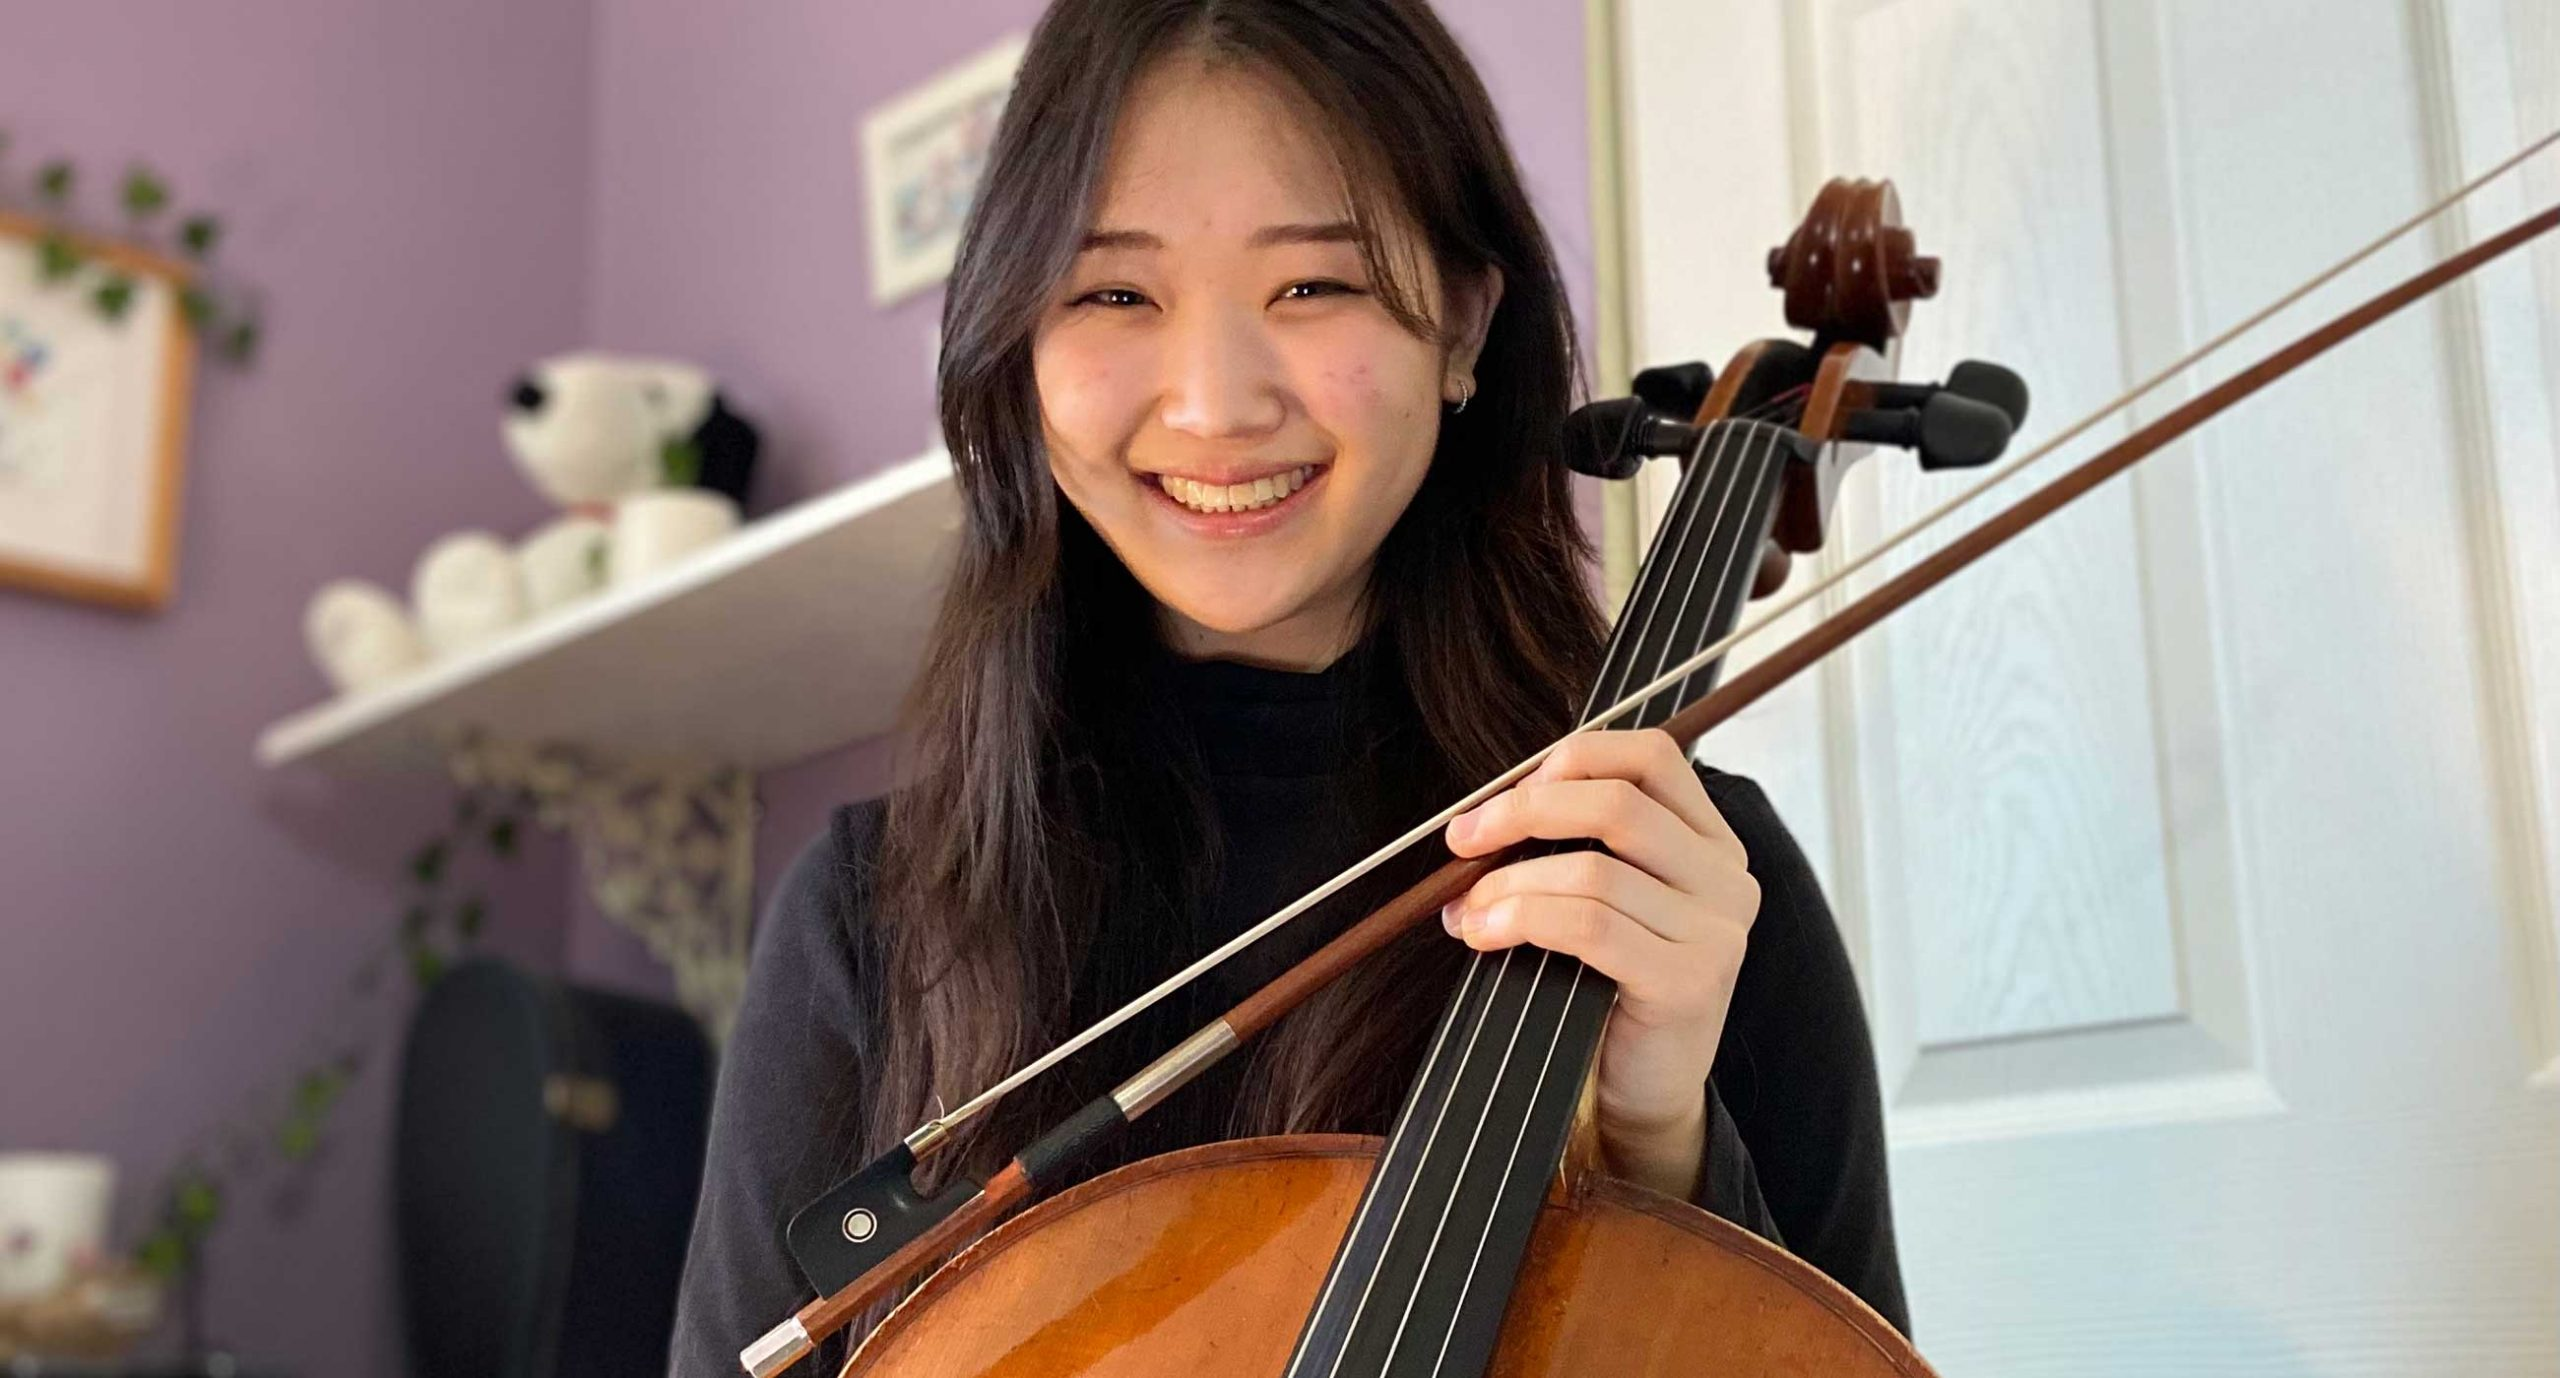 Mei Hotta holding a cello and smiling